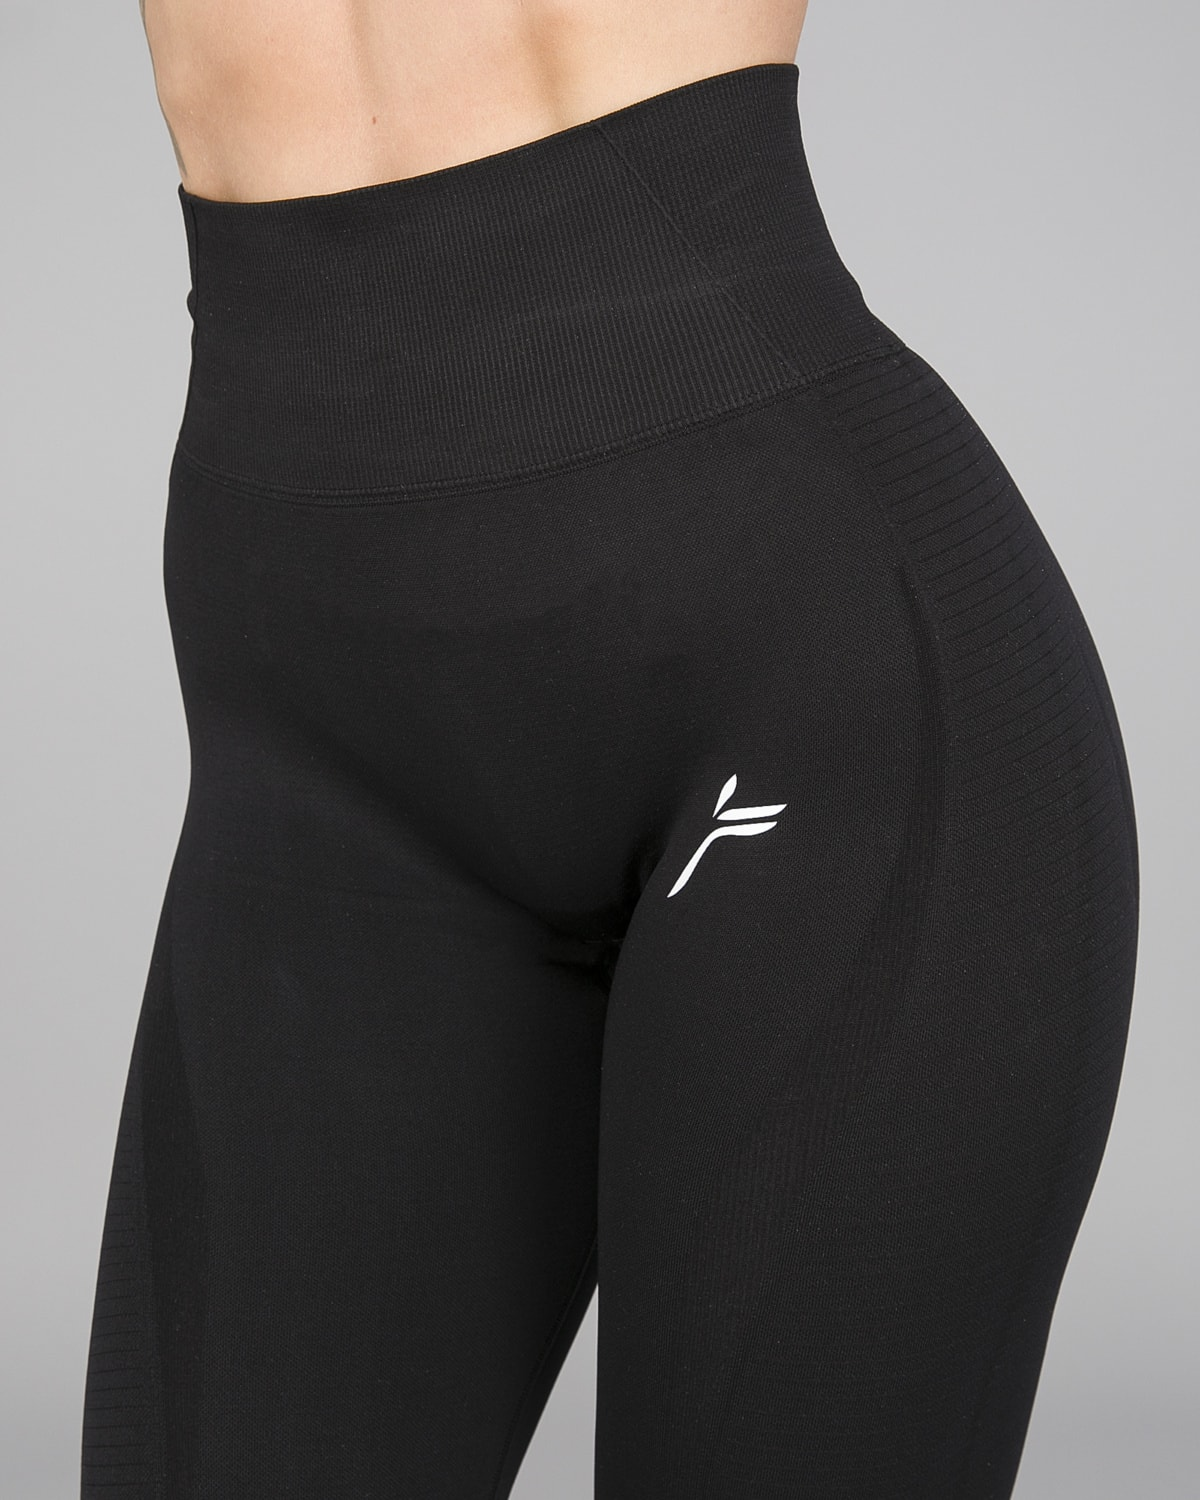 FAMME – Vortex Leggings 7:8 – Black14